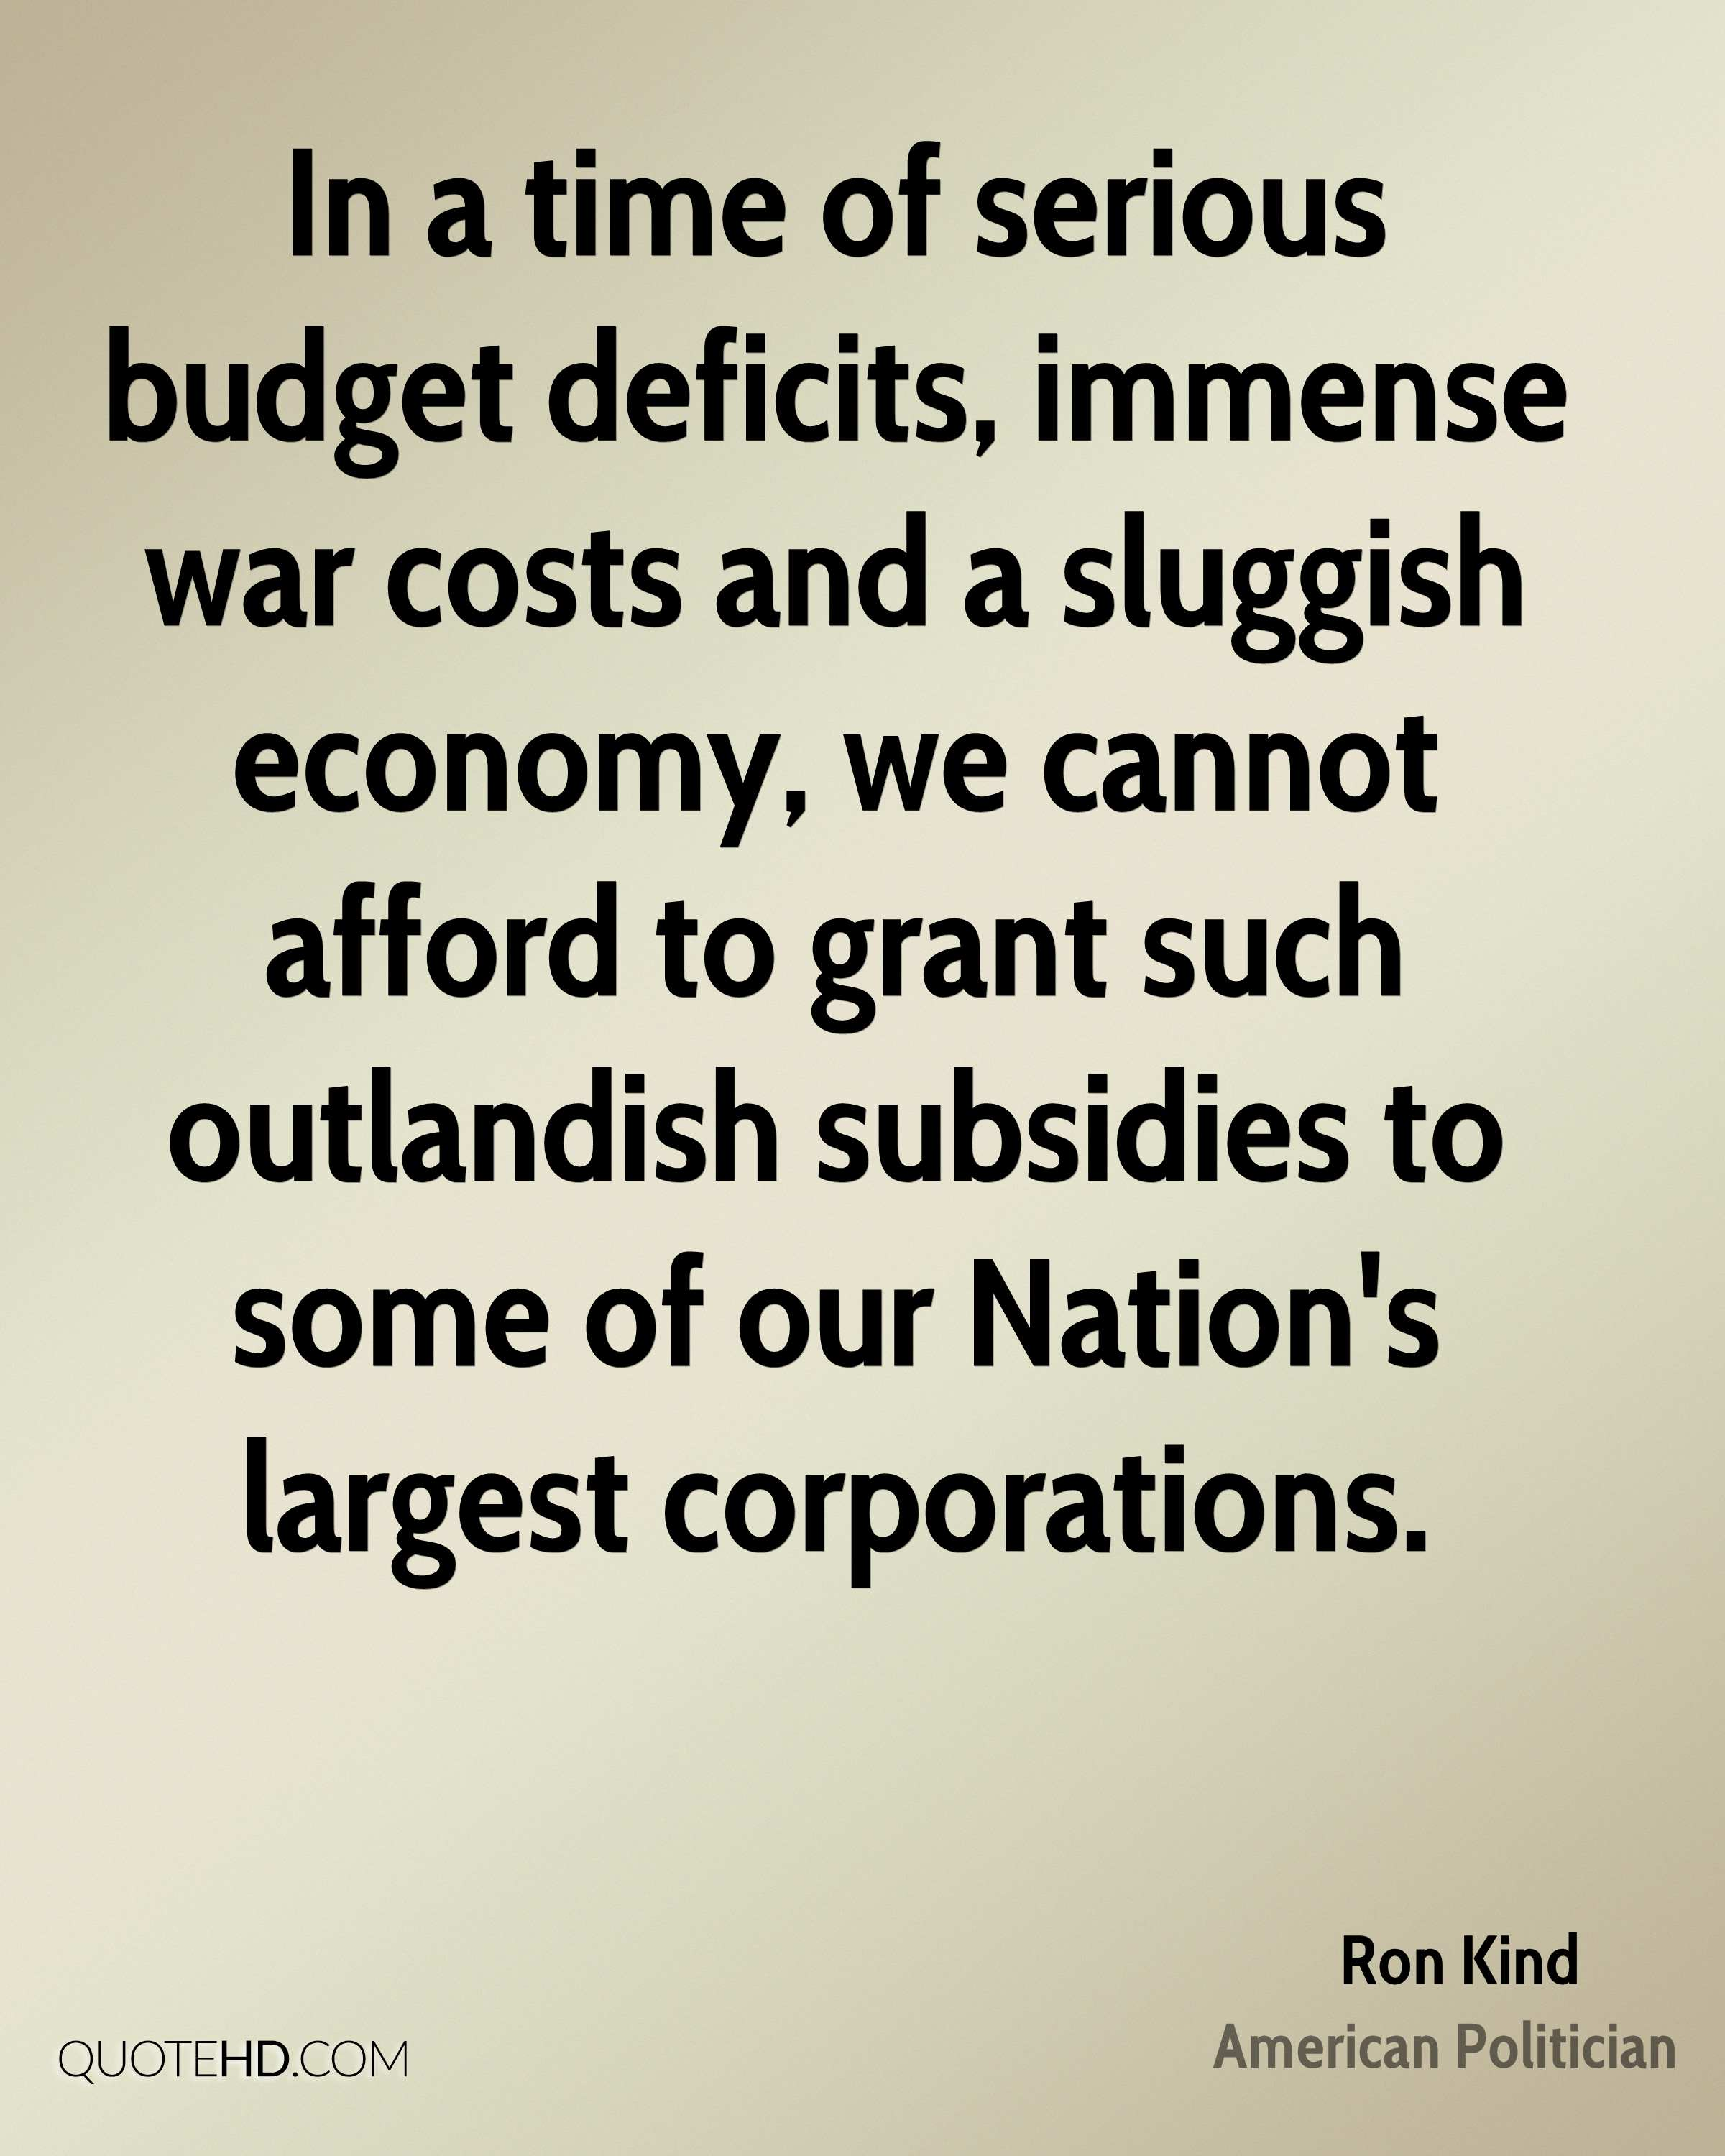 In a time of serious budget deficits, immense war costs and a sluggish economy, we cannot afford to grant such outlandish subsidies to some of our Nation's largest corporations.